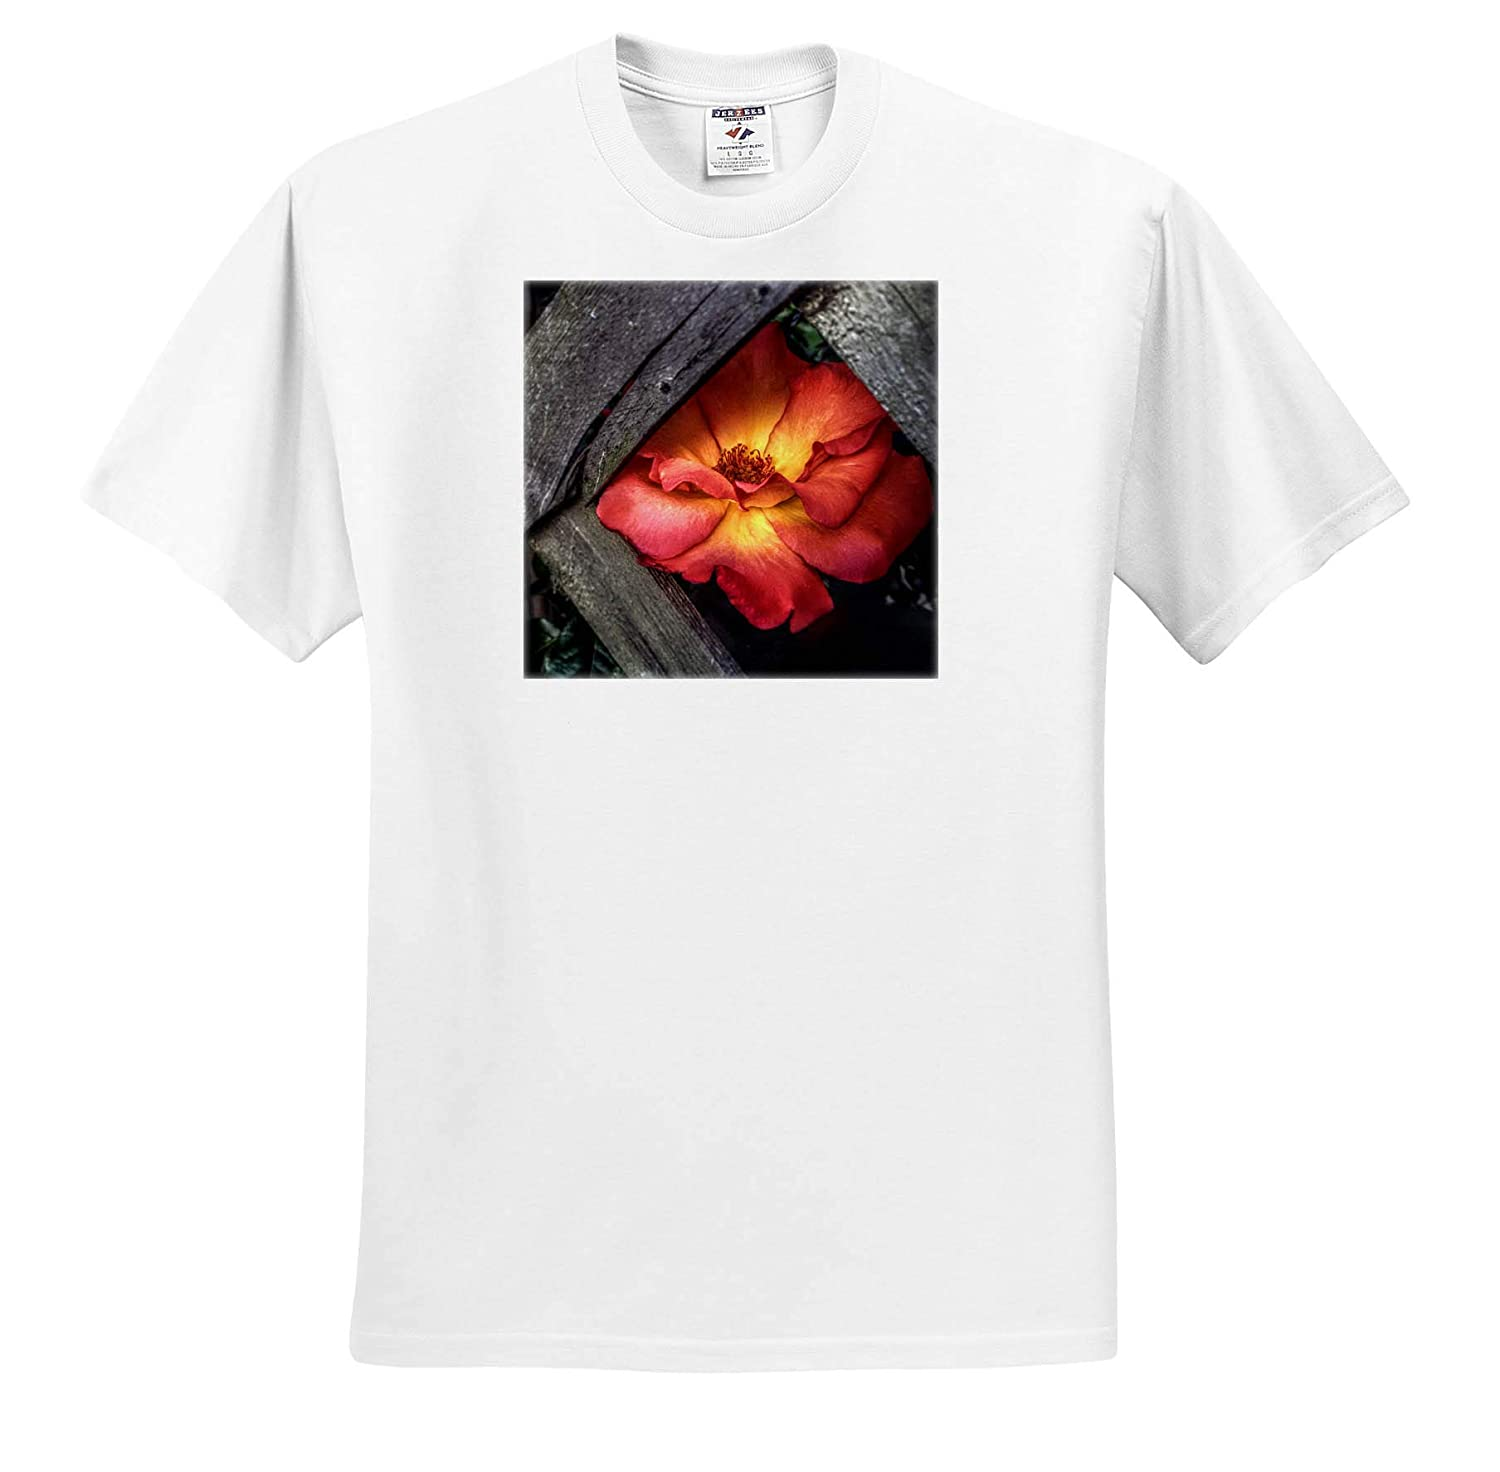 3dRose Stamp City - Adult T-Shirt XL Flowers ts/_320165 HDR Photograph of a Playboy Rose Peeking Through Some Lattice